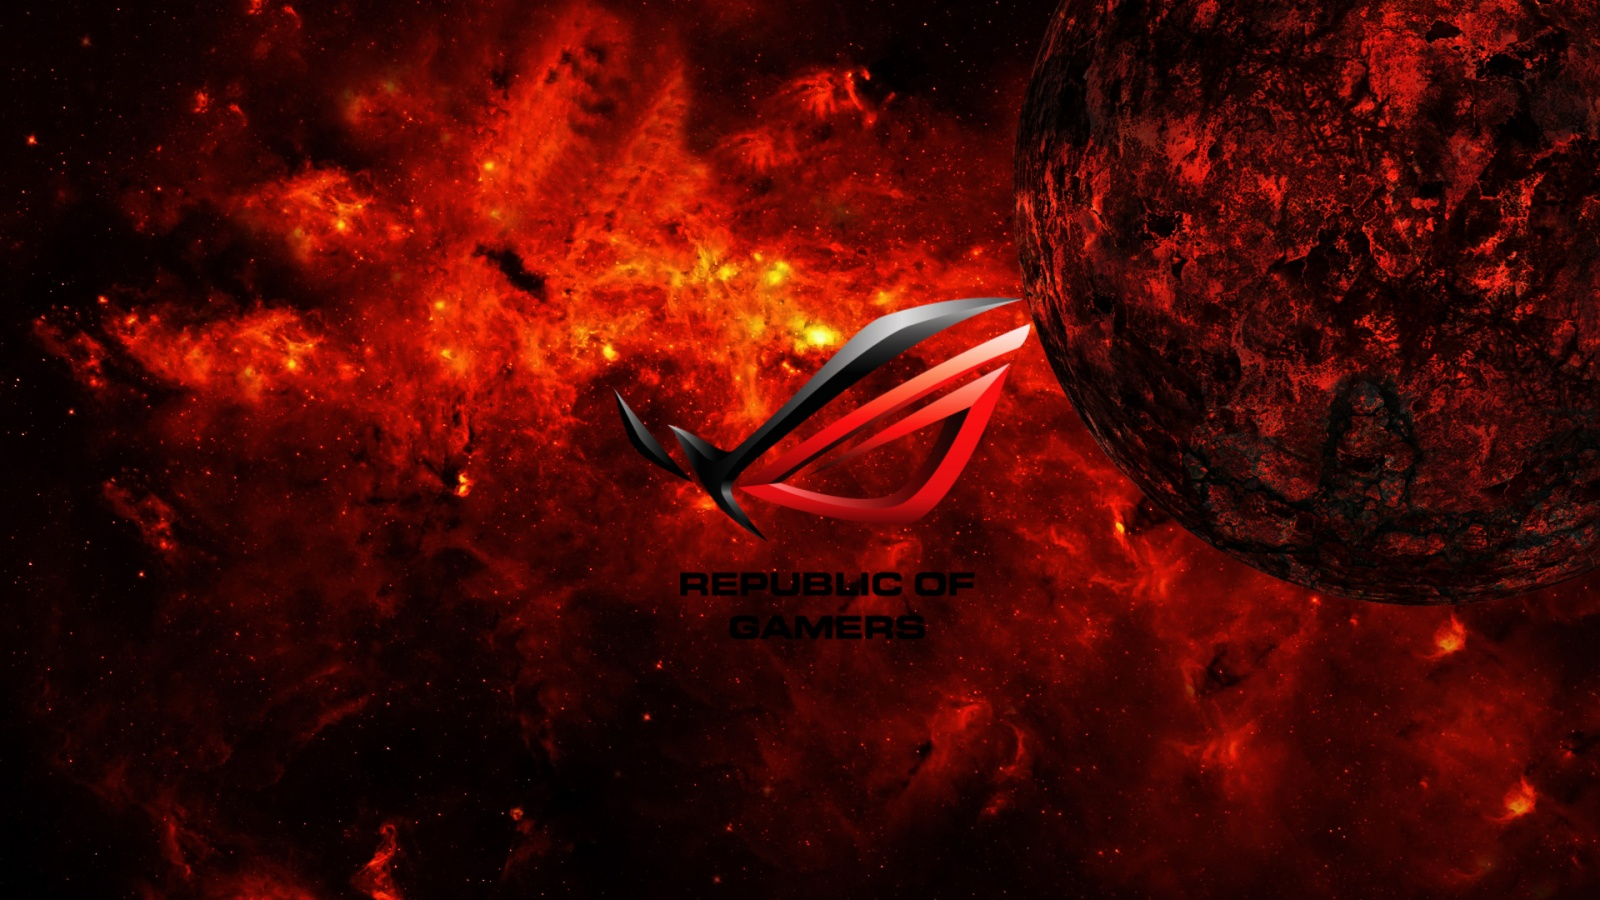 Asus Republic Of Gamers 1600 x 900 Download Close 1600x900